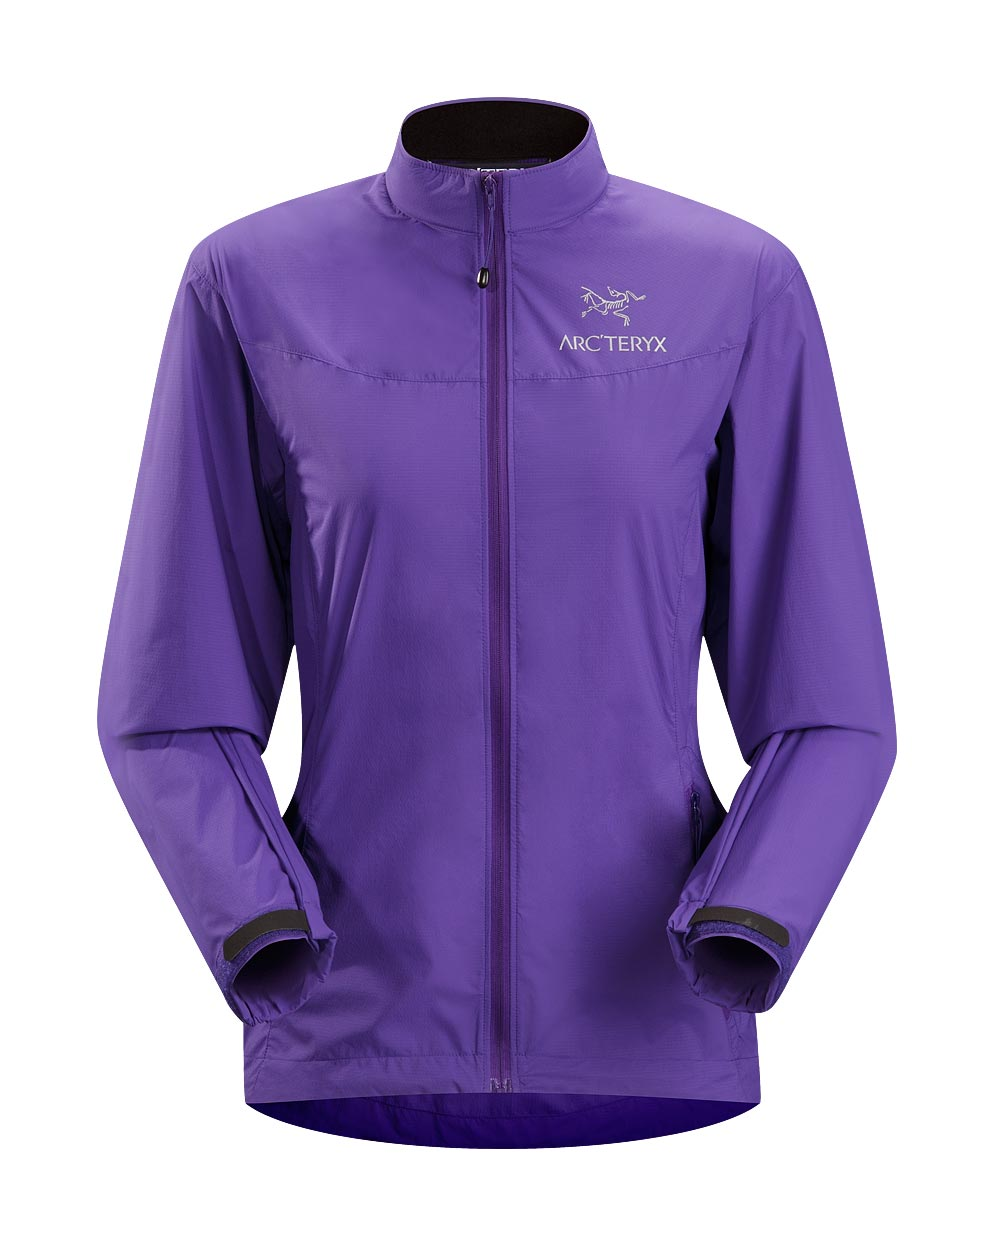 Arcteryx Jackets Women Larkspar Celeris Jacket